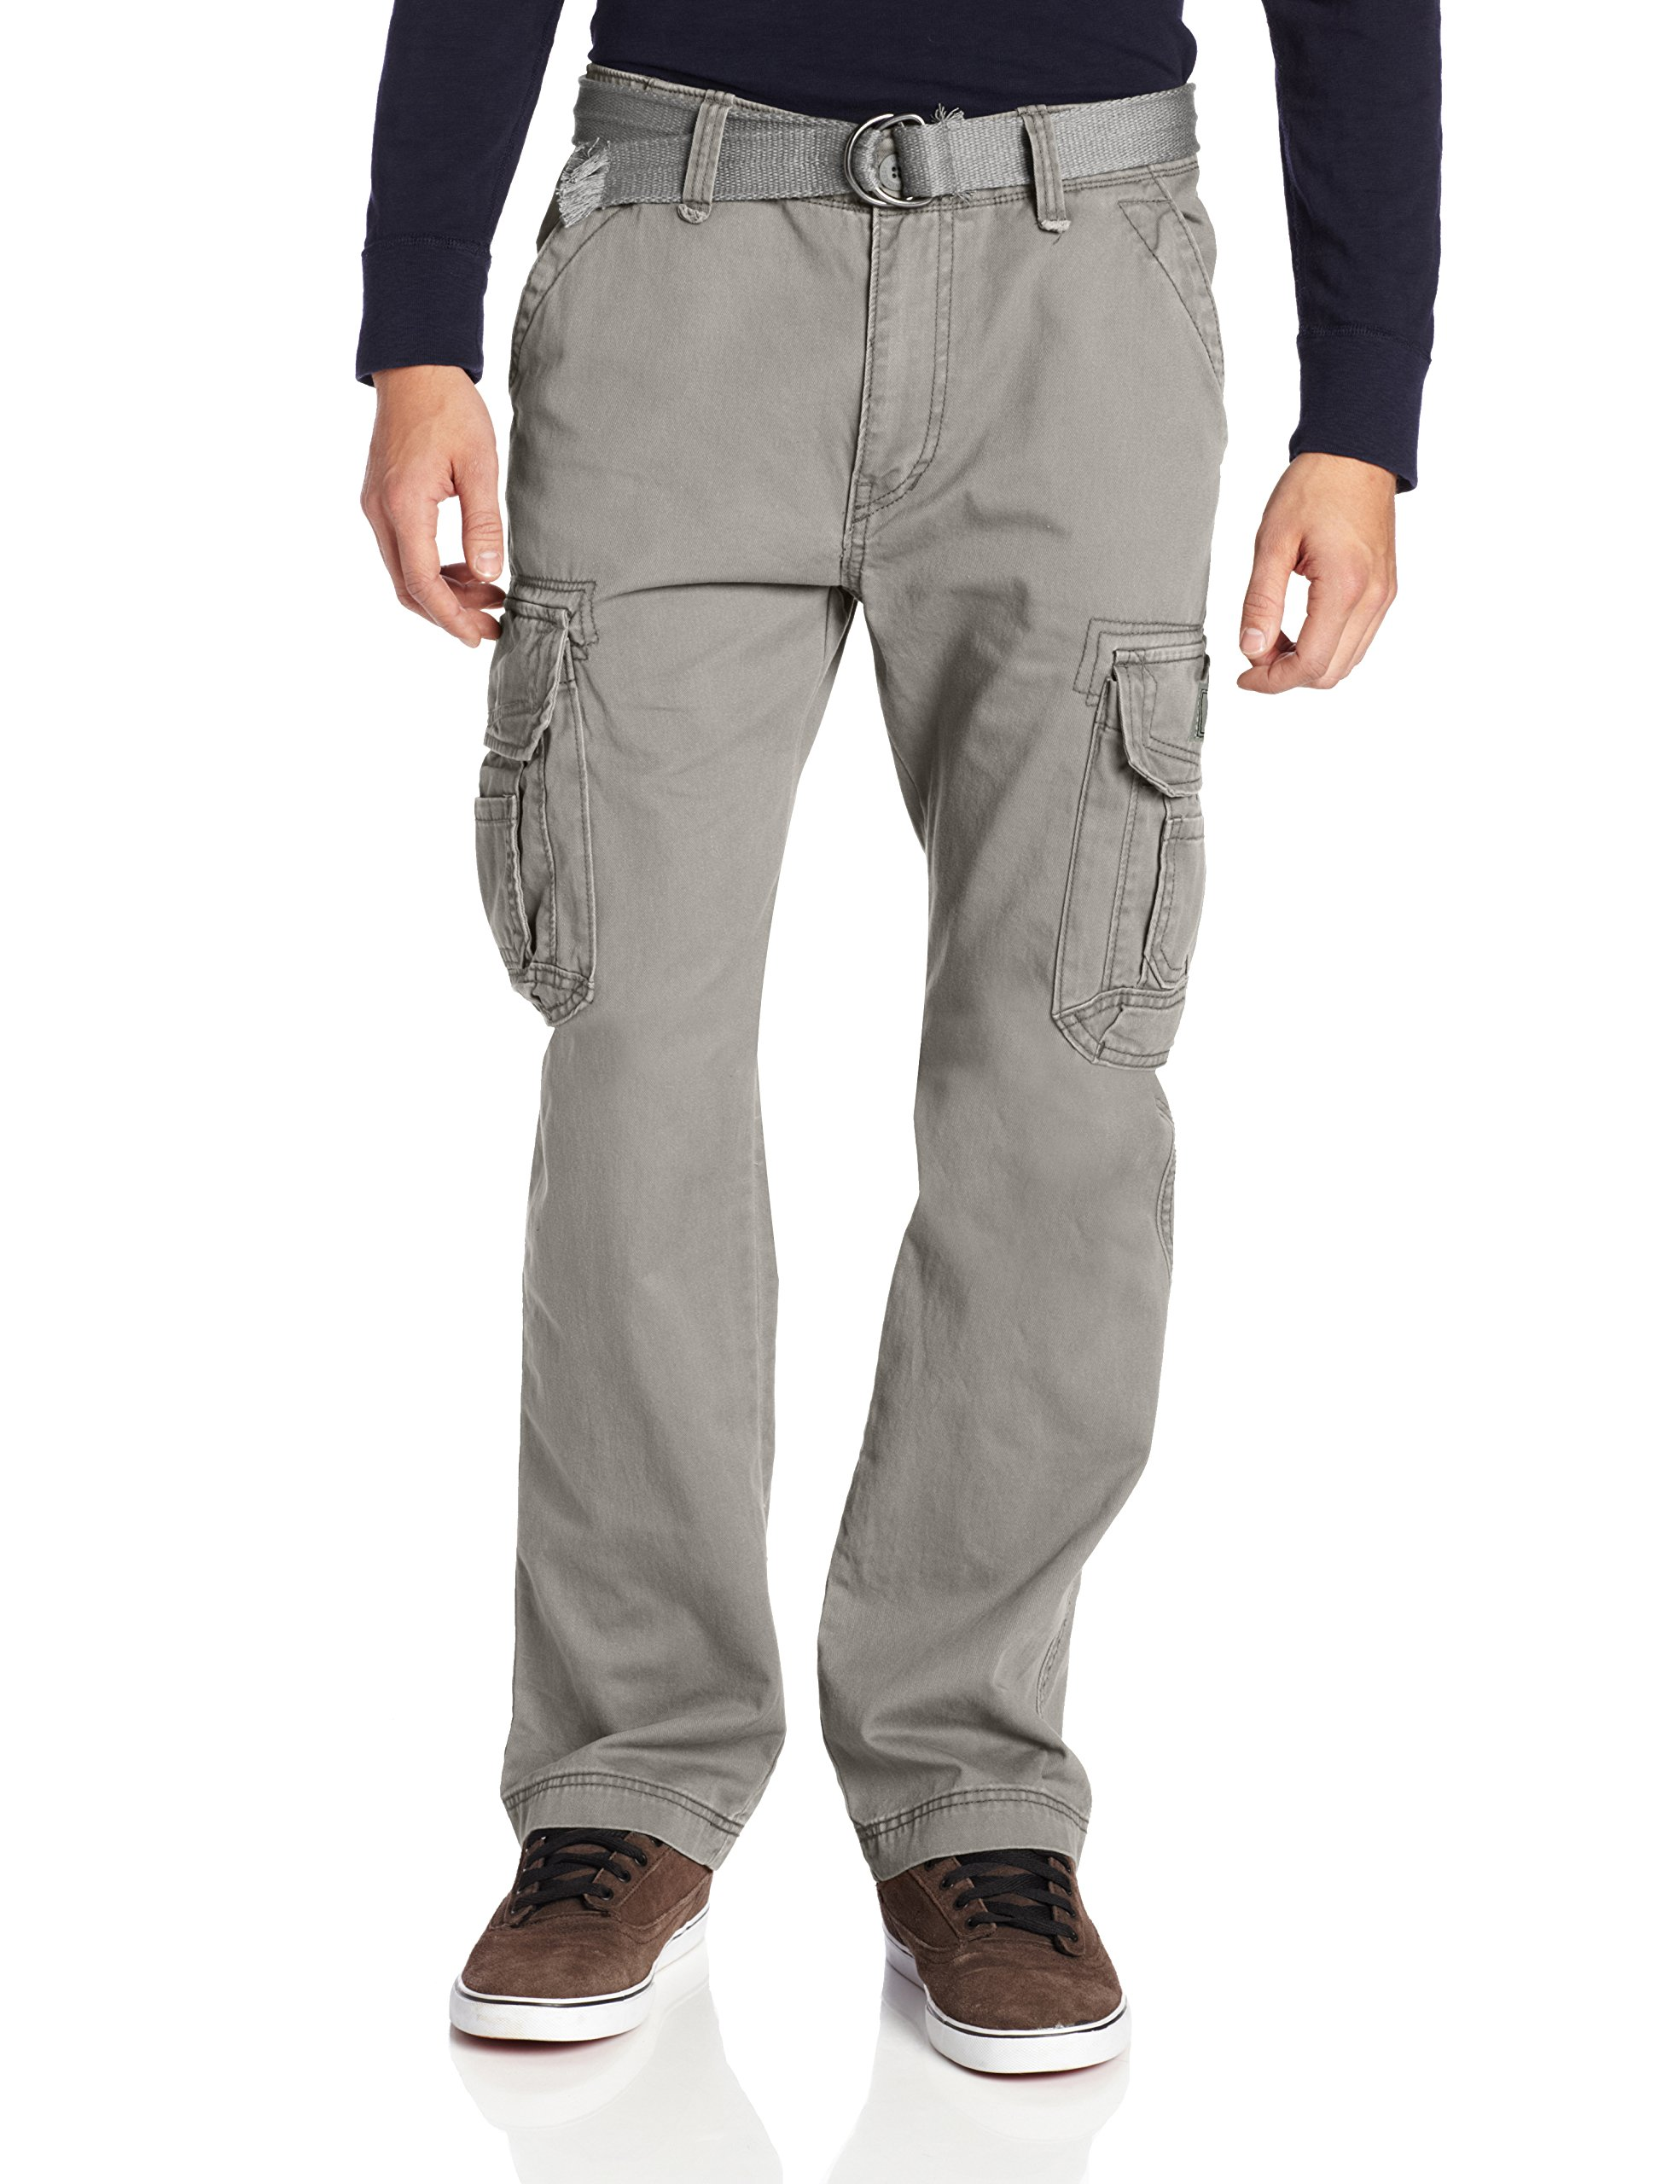 Unionbay Men's Survivor Iv Relaxed Fit Cargo Pant - Reg and Big and Tall Sizes, grey goose, 46x30 by UNIONBAY